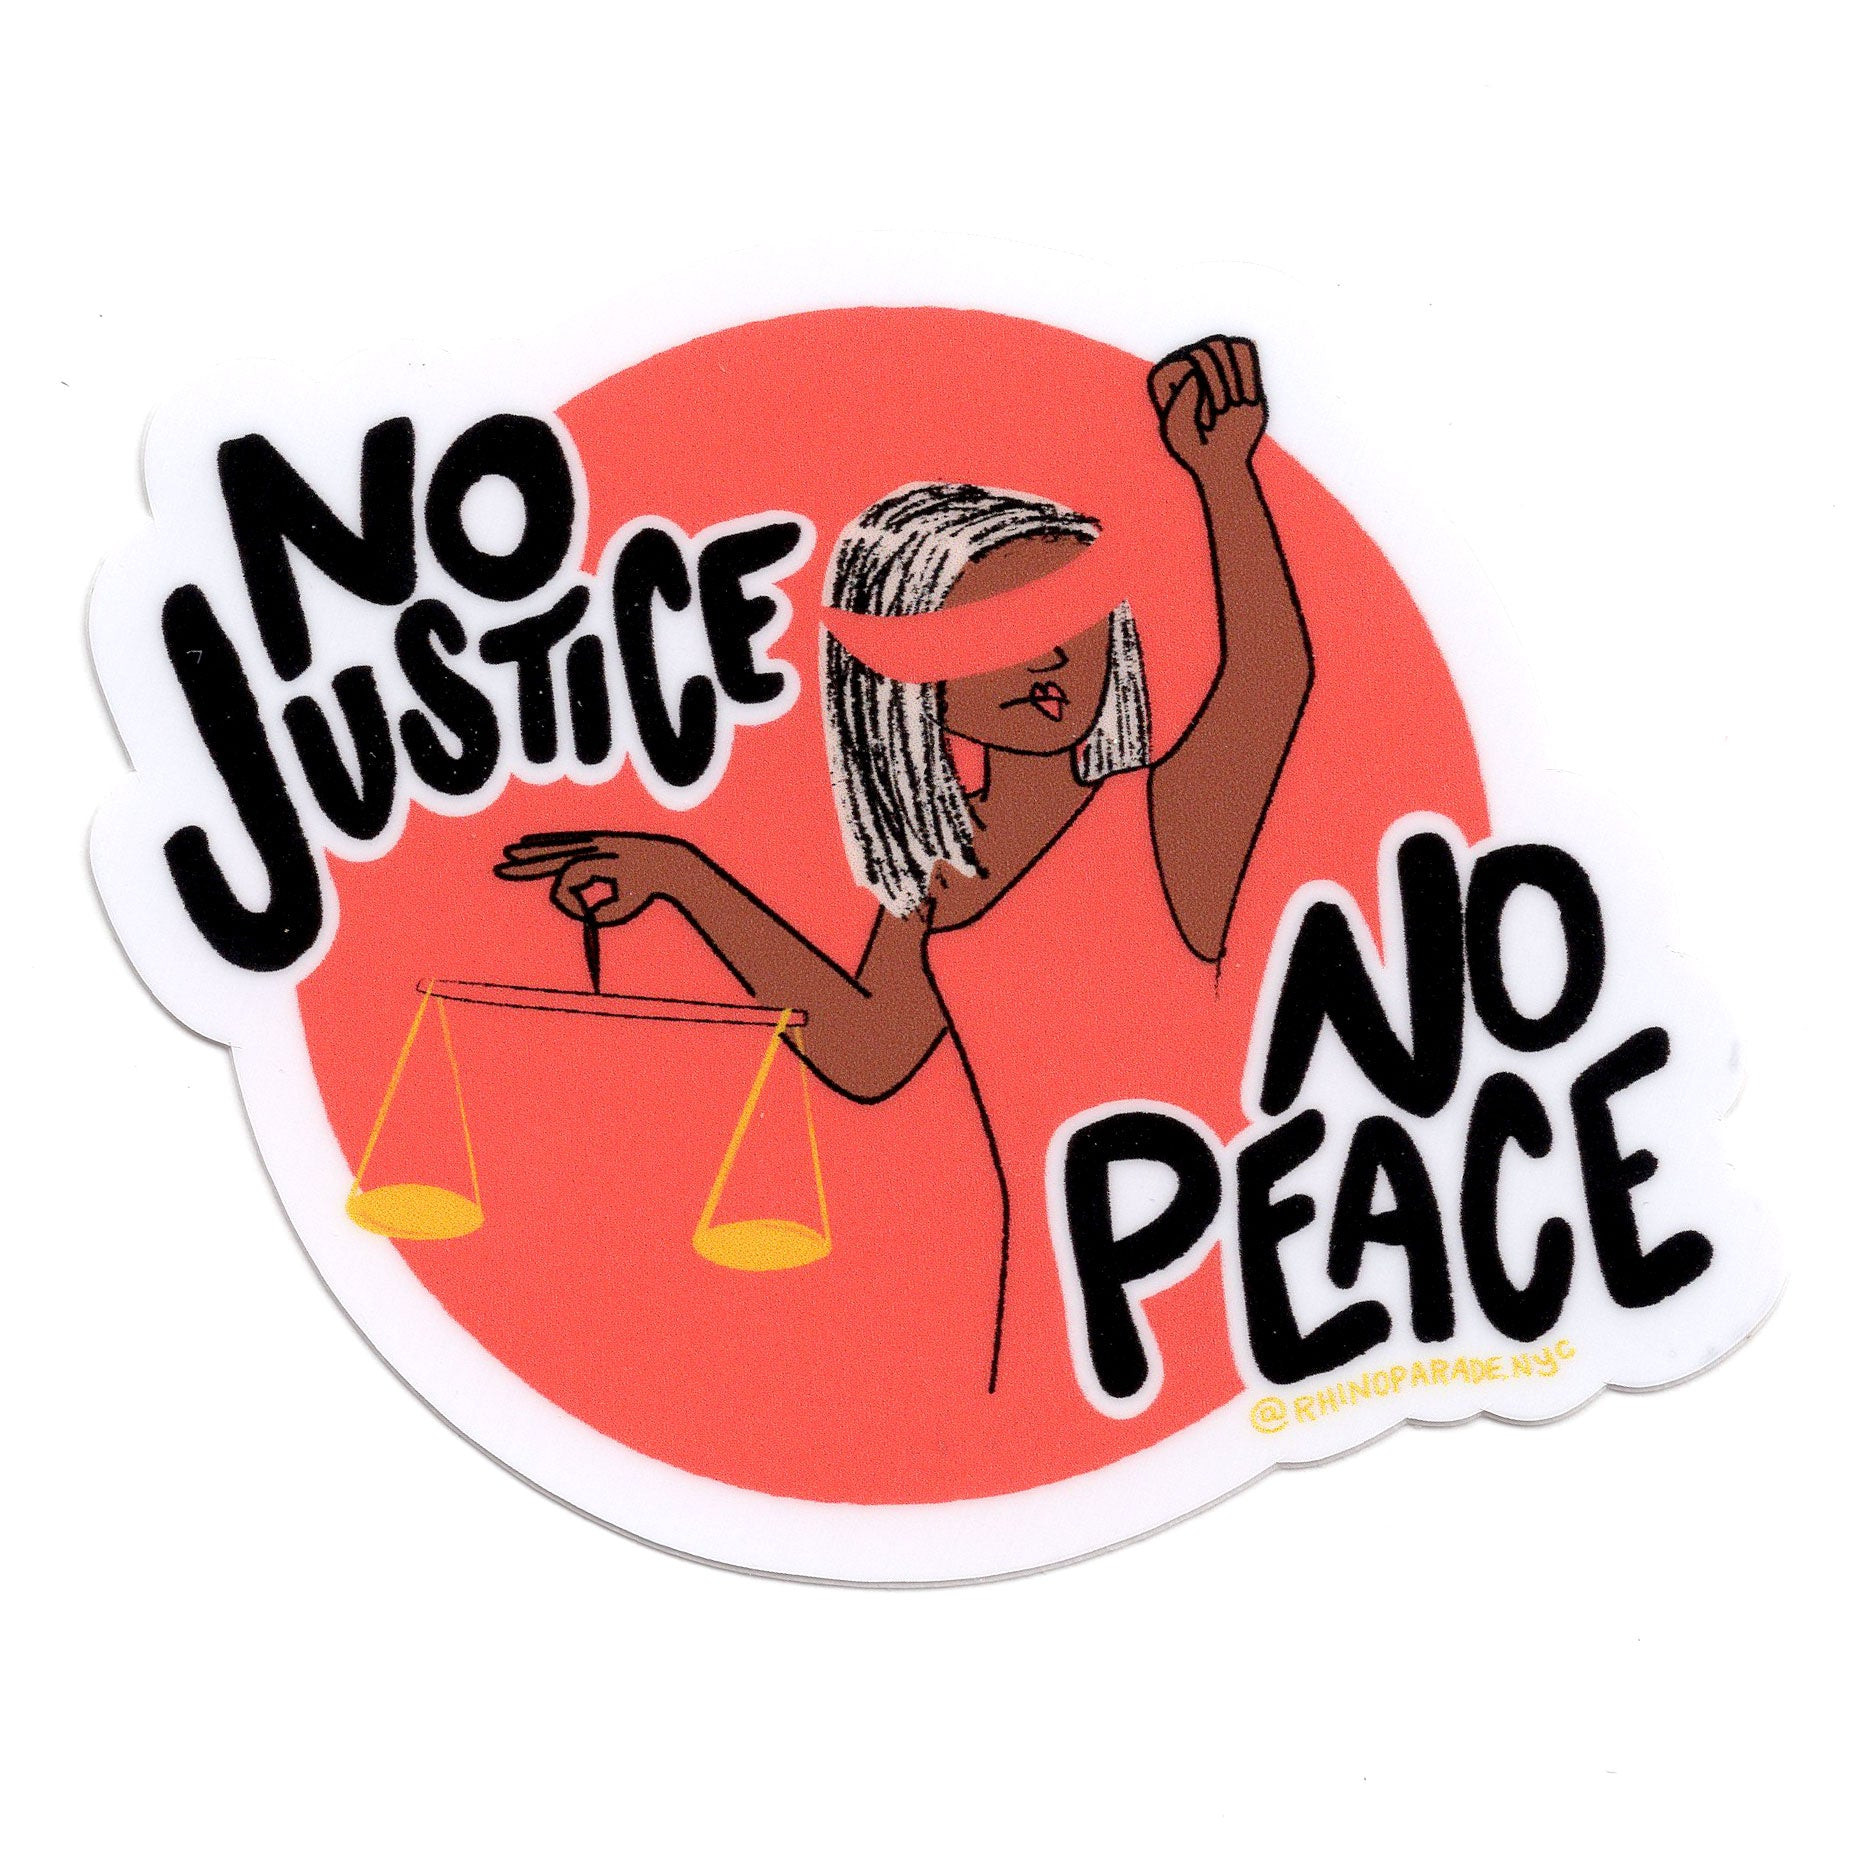 No Jusice! No Peace! Sticker